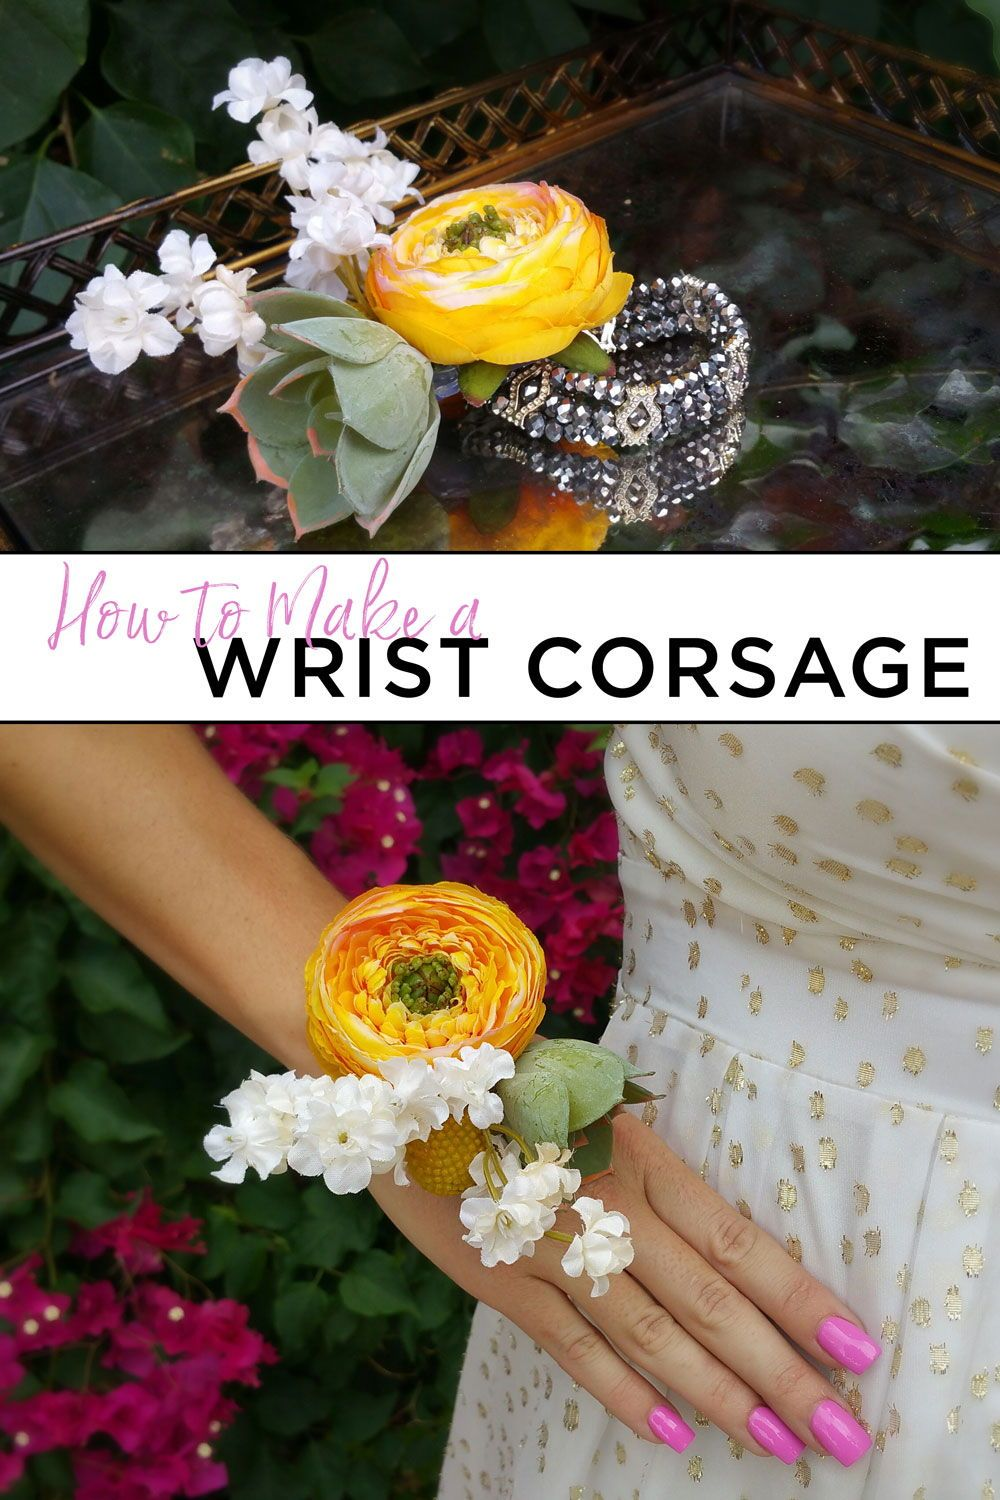 How To Make A Wrist Corsage Corsages Wrist Corsages Pinterest